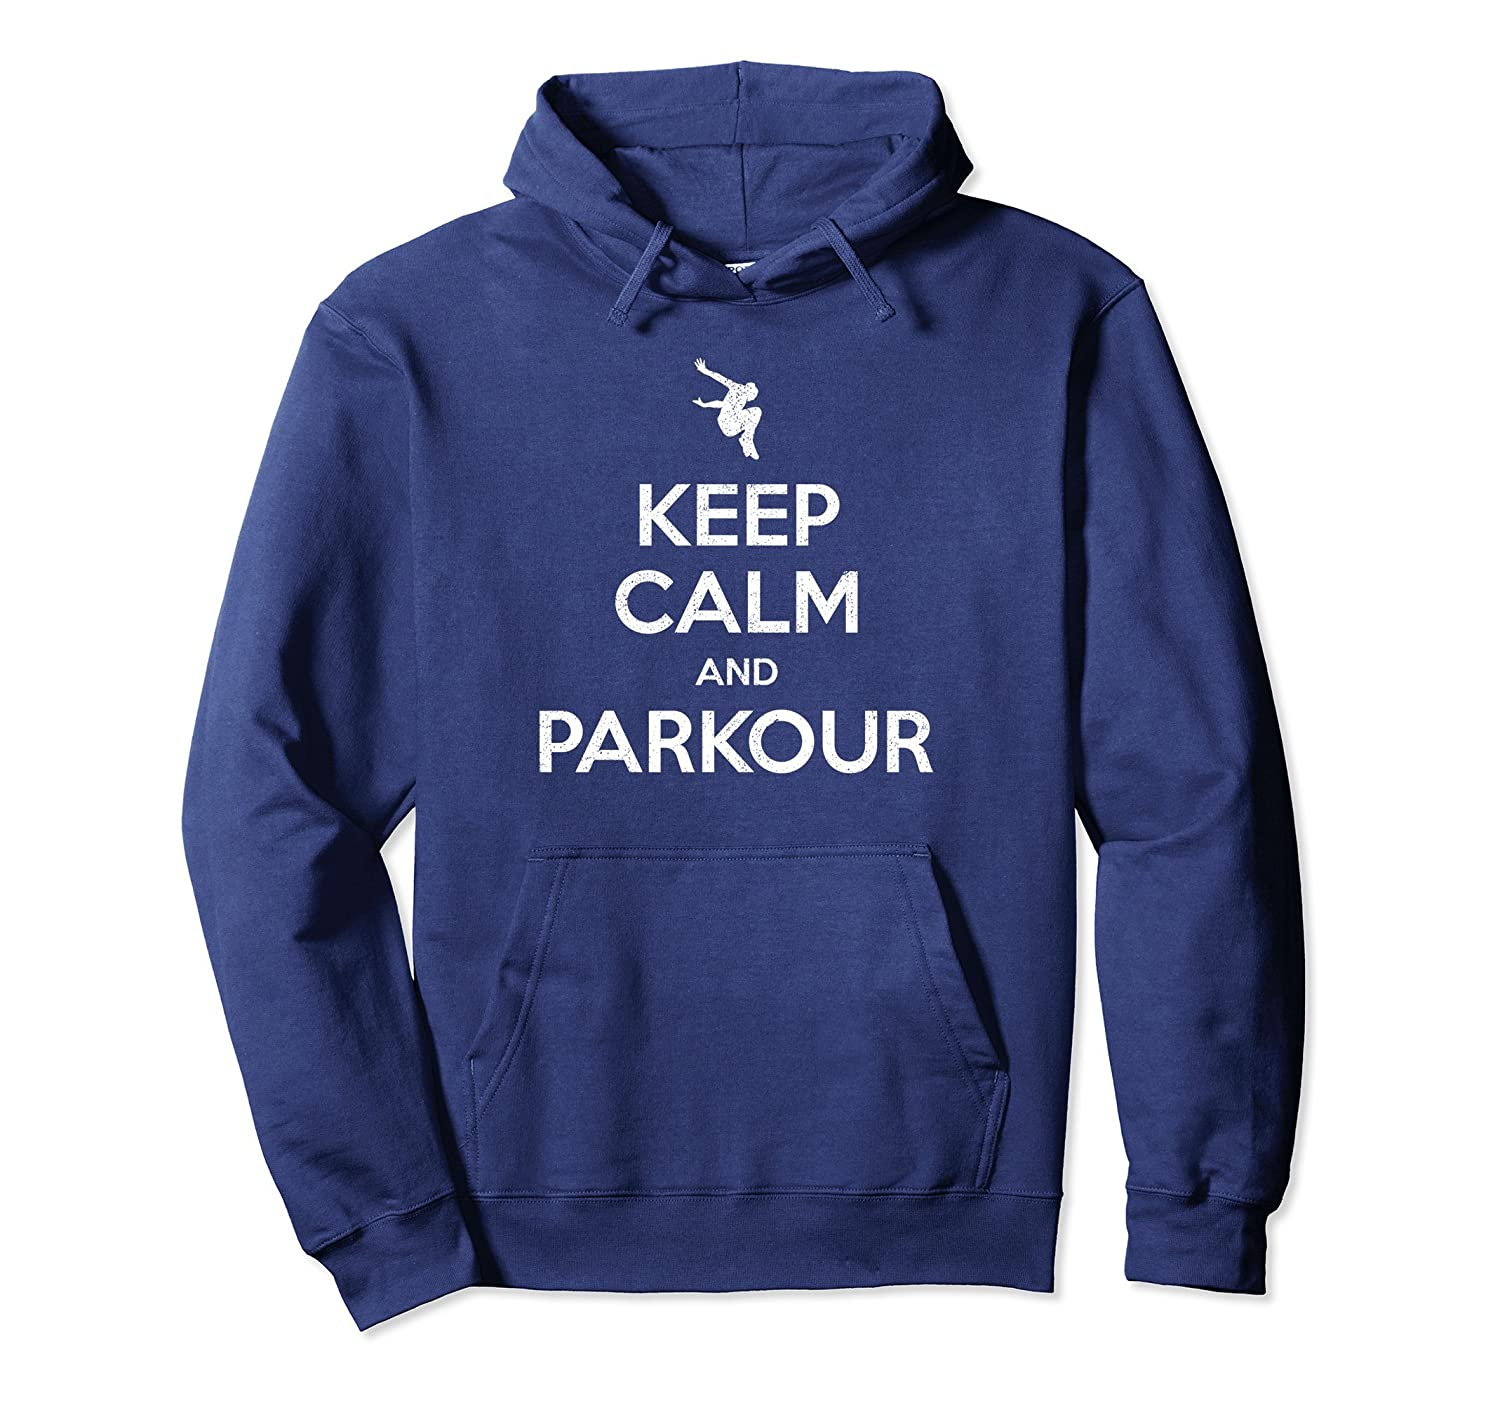 keep calm and parkour freerunning hoodie-Colonhue